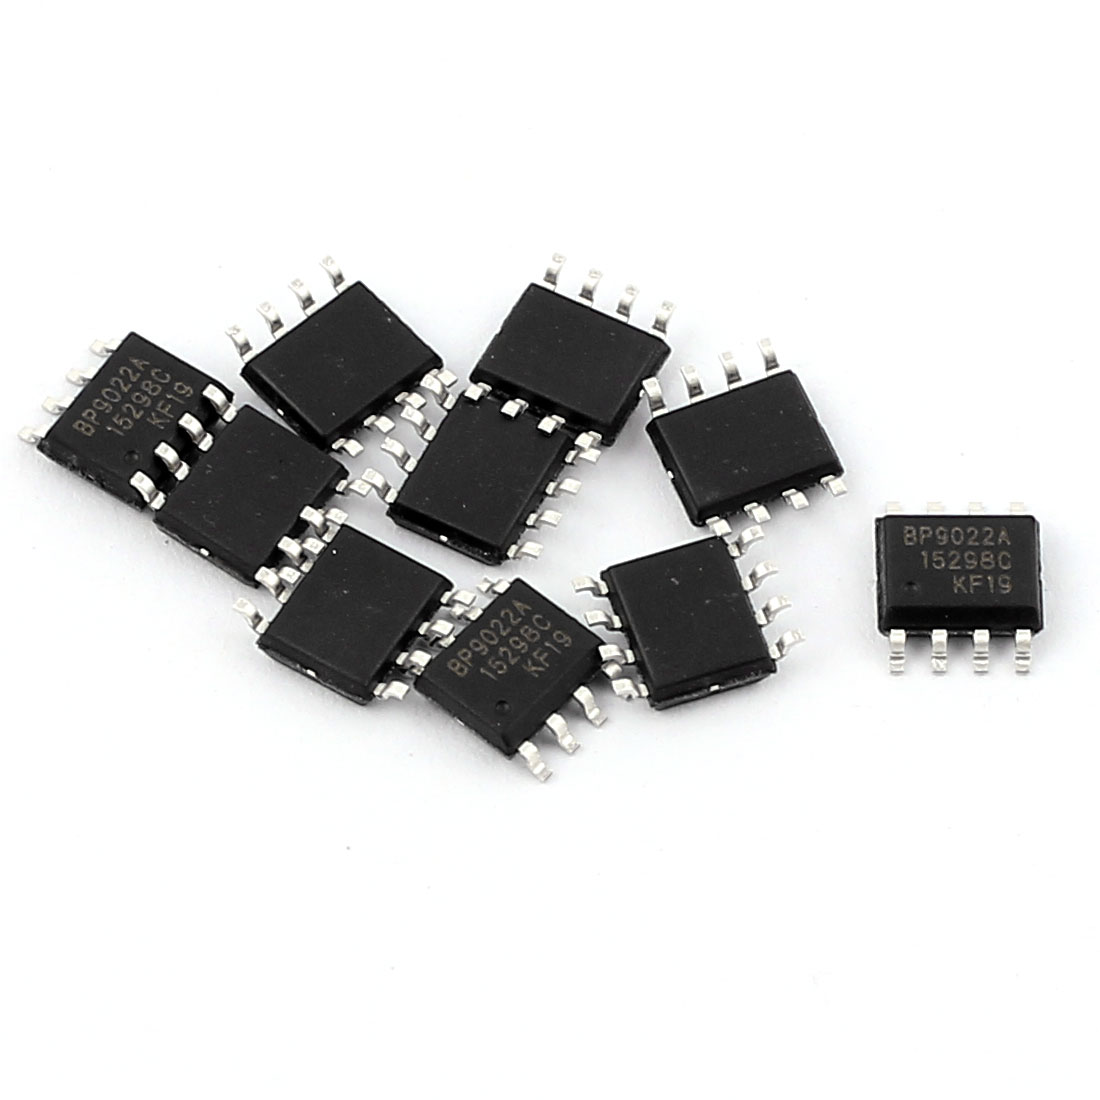 10Pcs BP9022A SOP-8 SMD SMT Type PCB Surface Mount LED Driver Circuit Module Integrated Circuit IC Chip